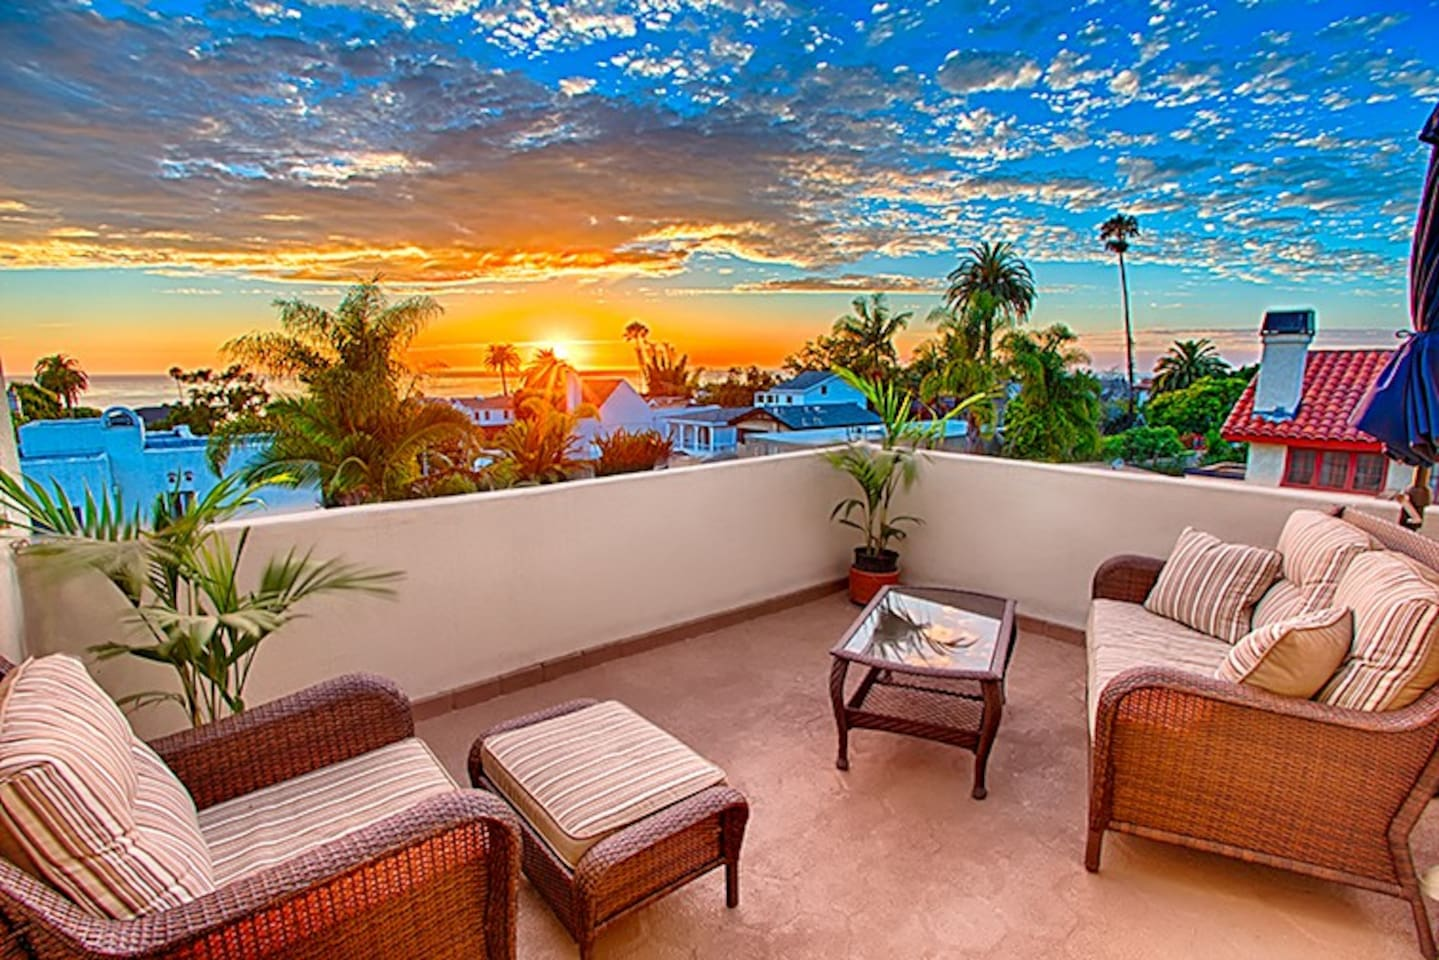 Enjoy amazing sunset and ocean views from the upper deck.